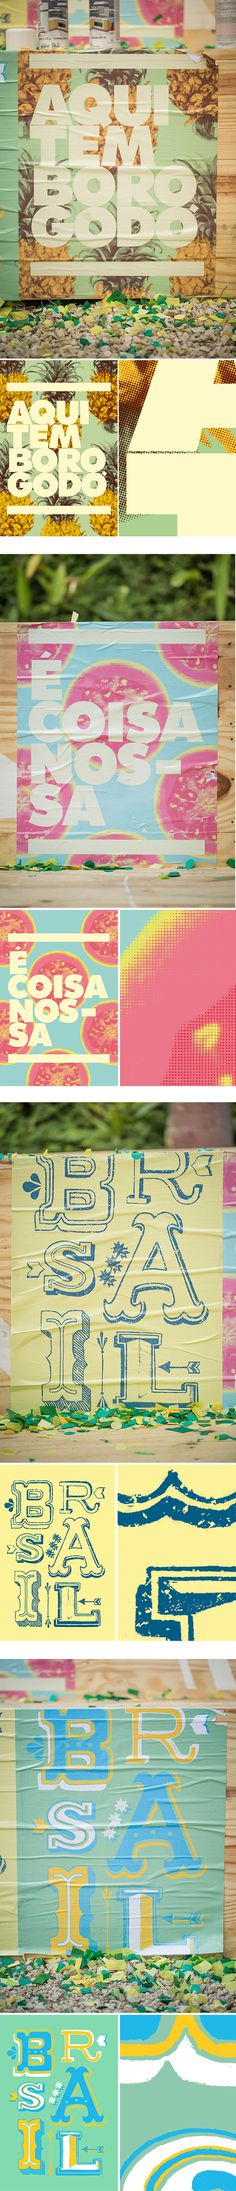 Fifa World Cup 2014 on Behance #typography #poster #lettering #fruit #world cup #brazil